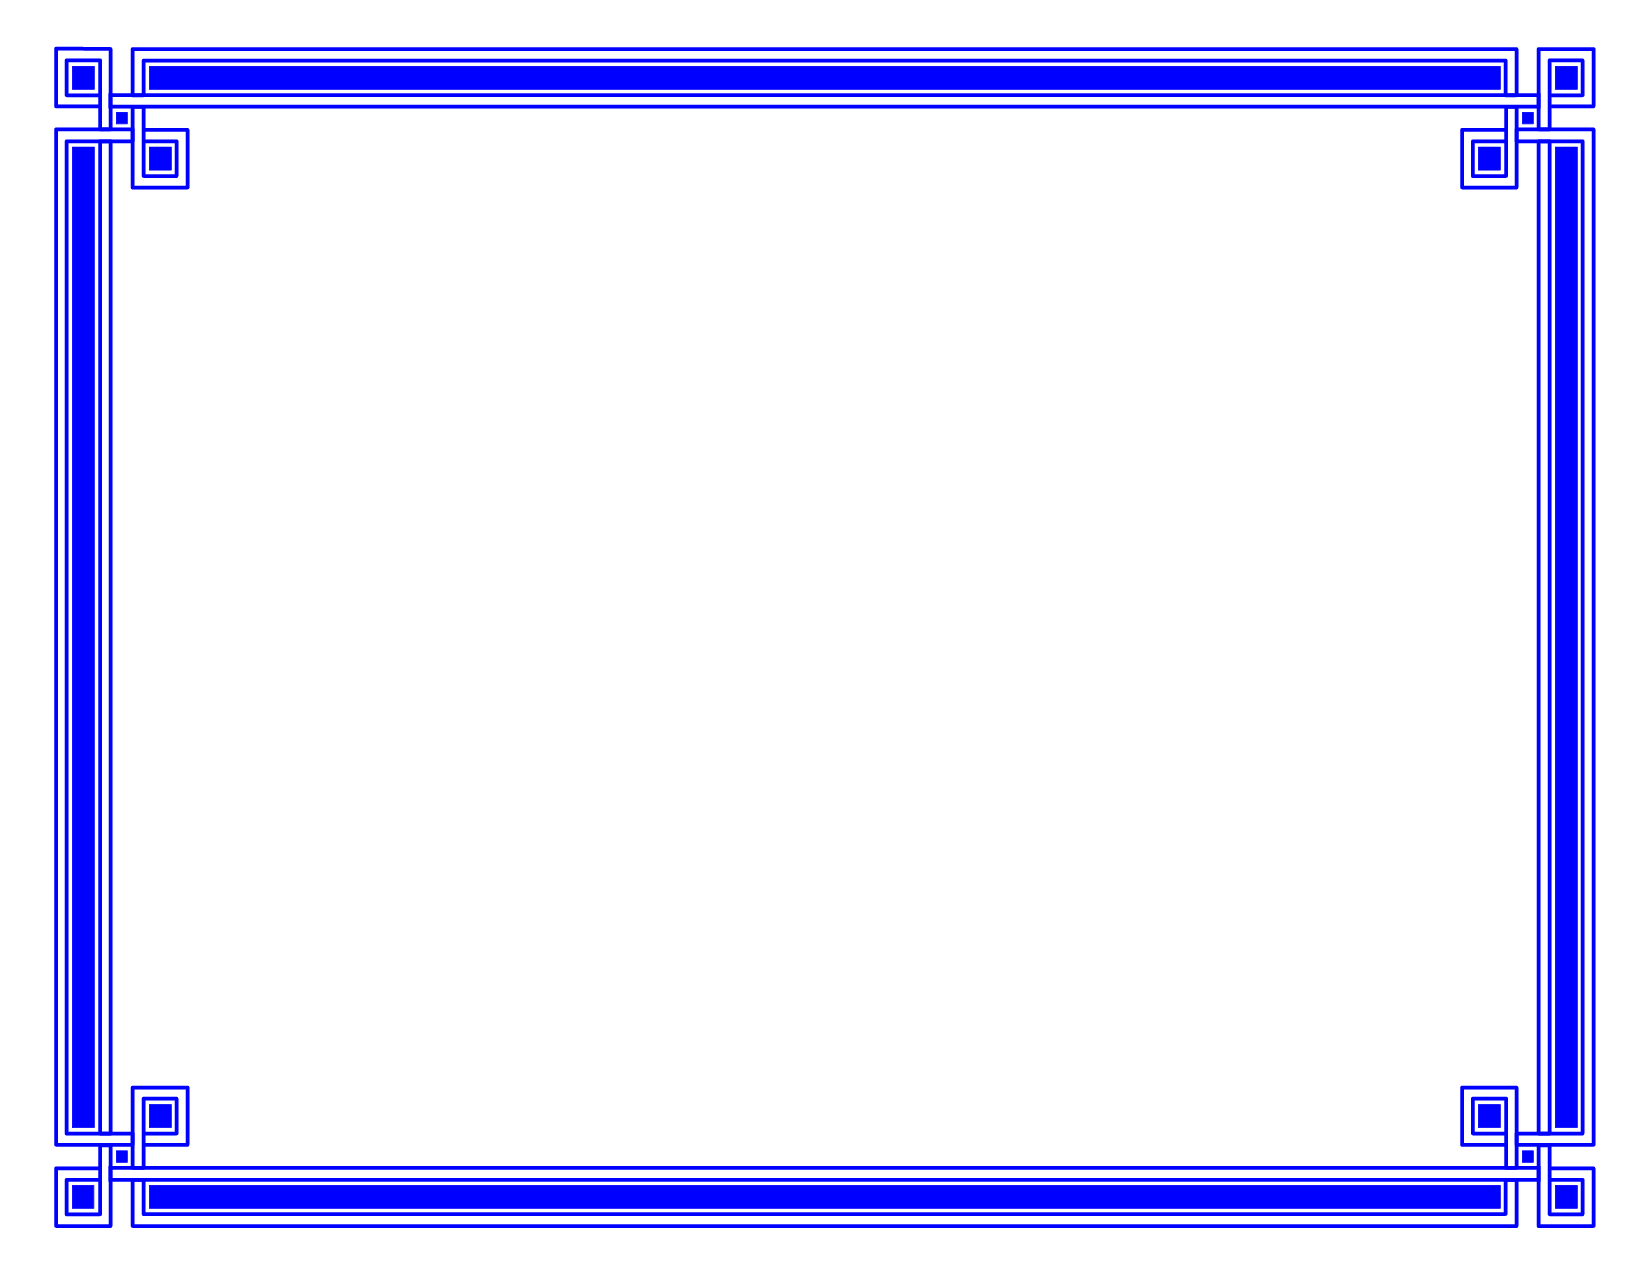 gift certificate border clipart best 10 best images of paper certificate samples paper gift